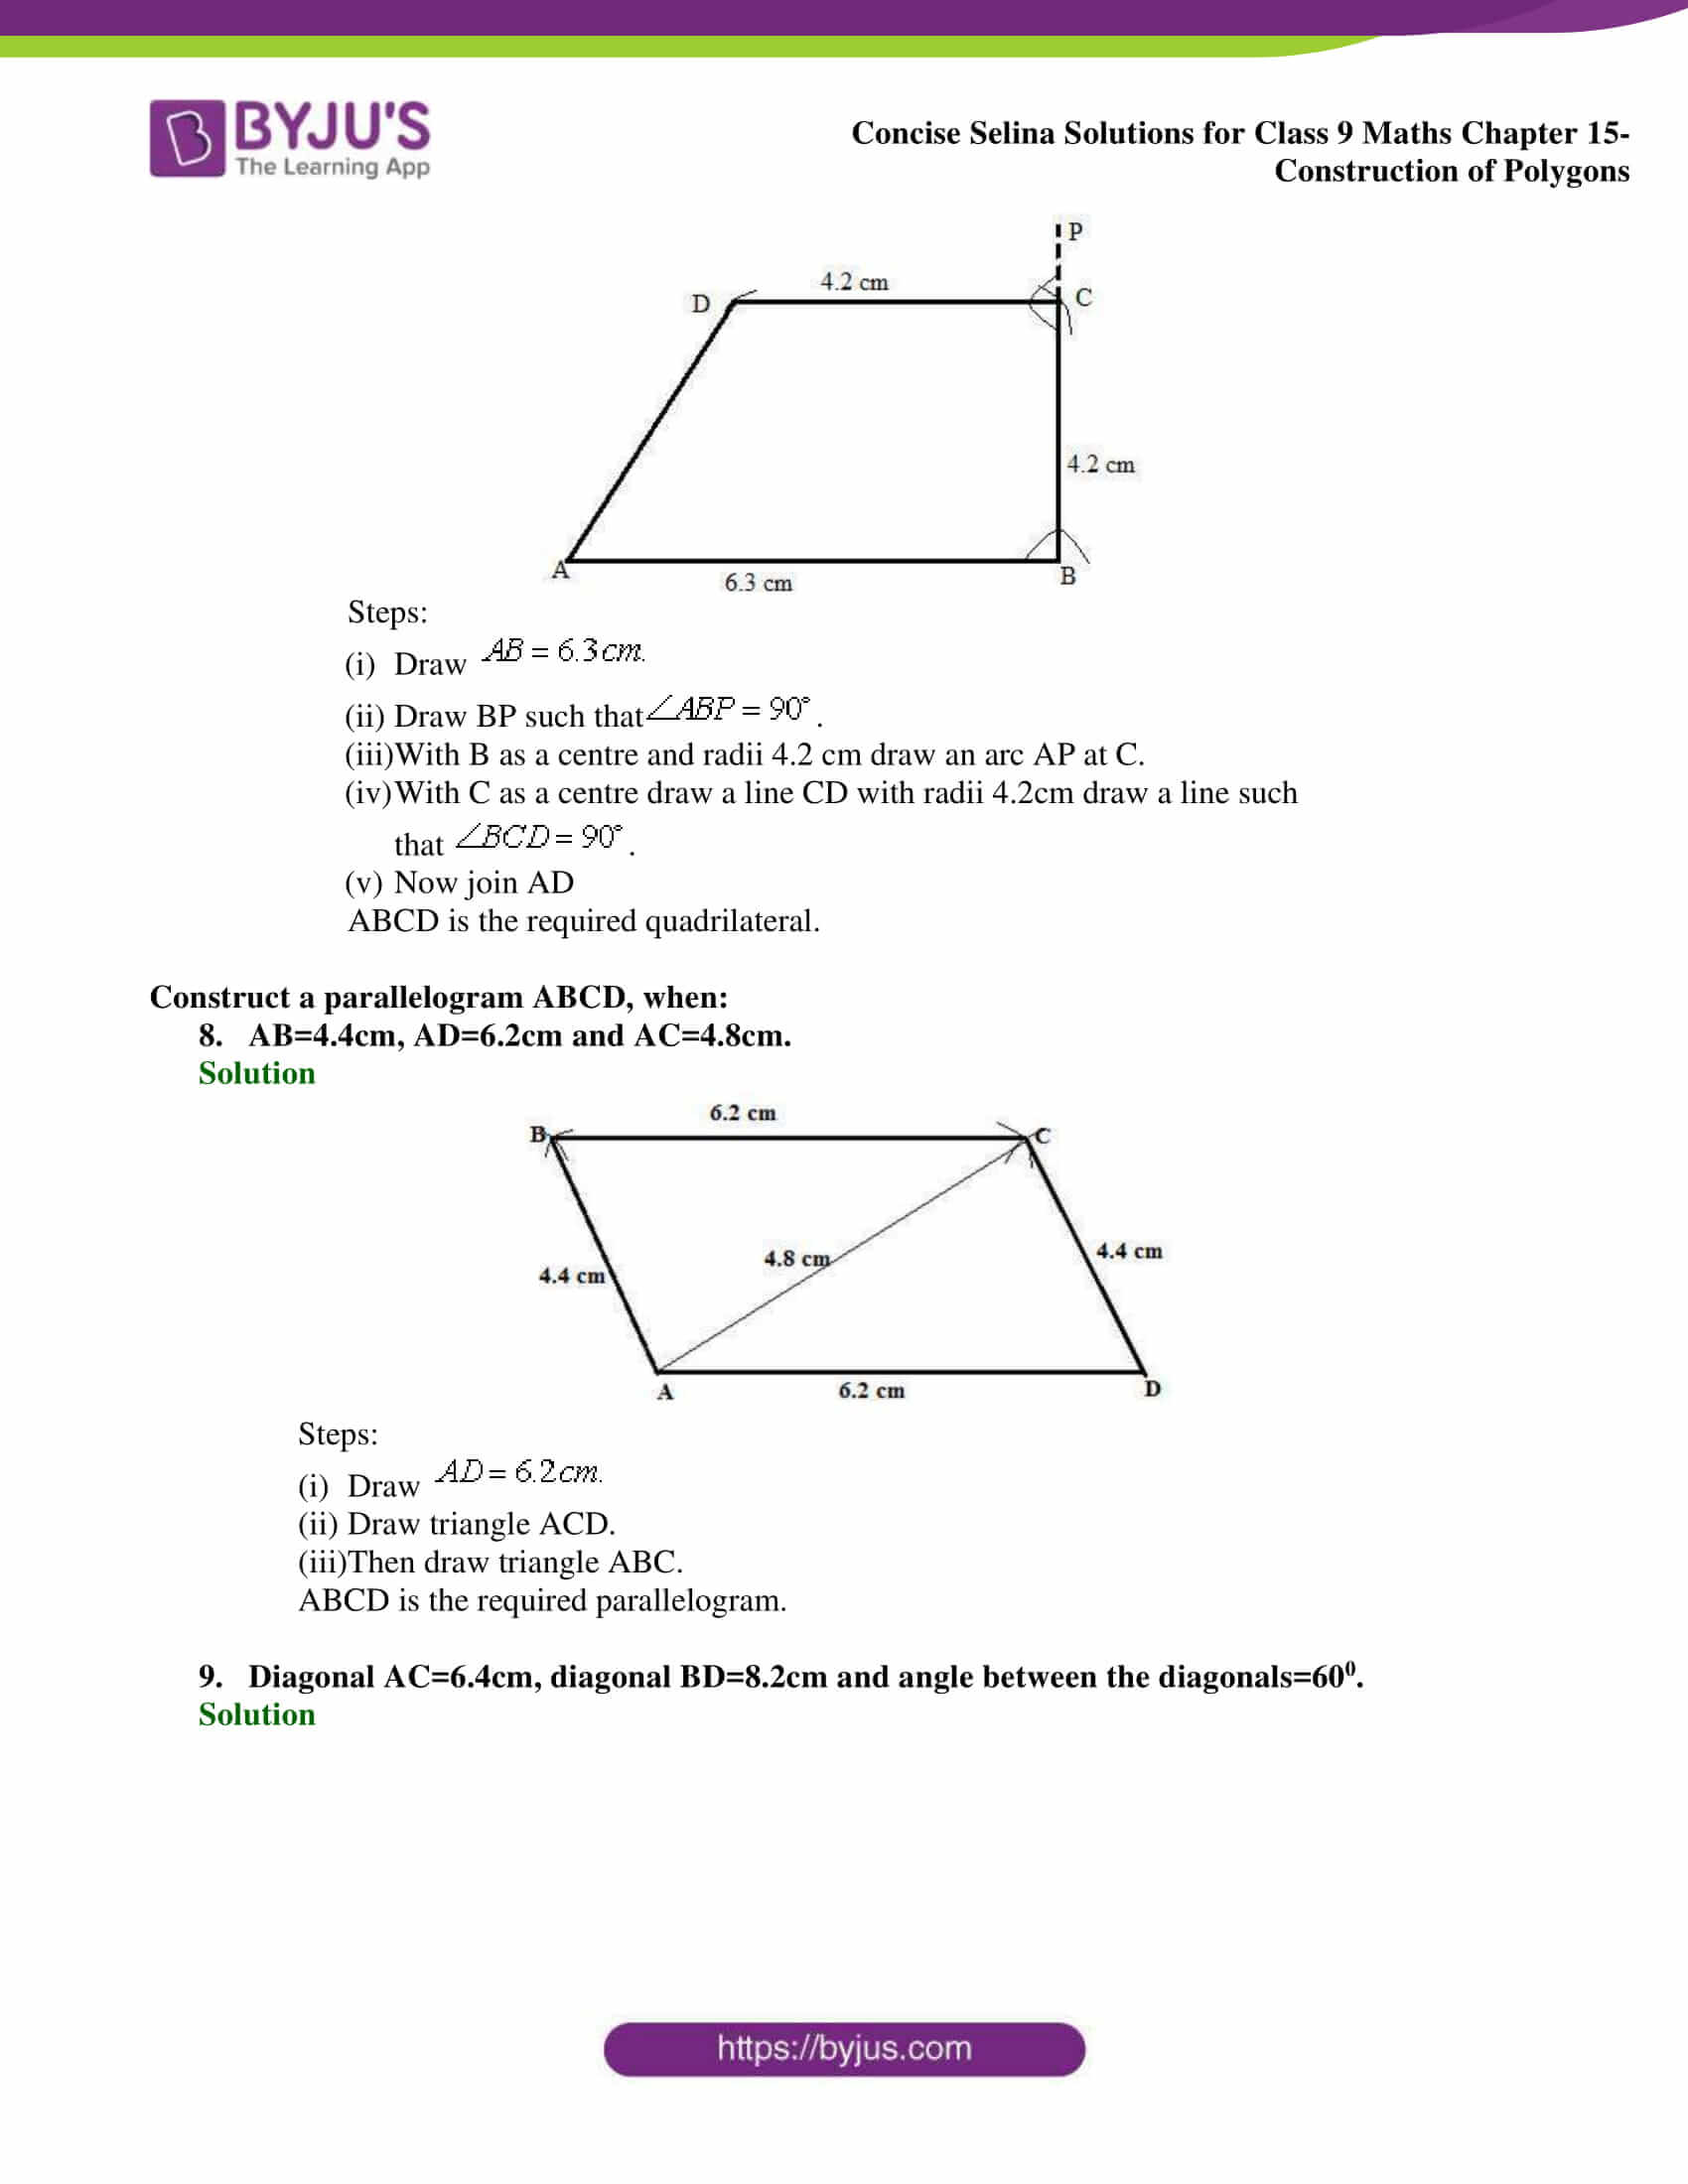 selina Solutions for Class 9 Maths Chapter 15 part 04